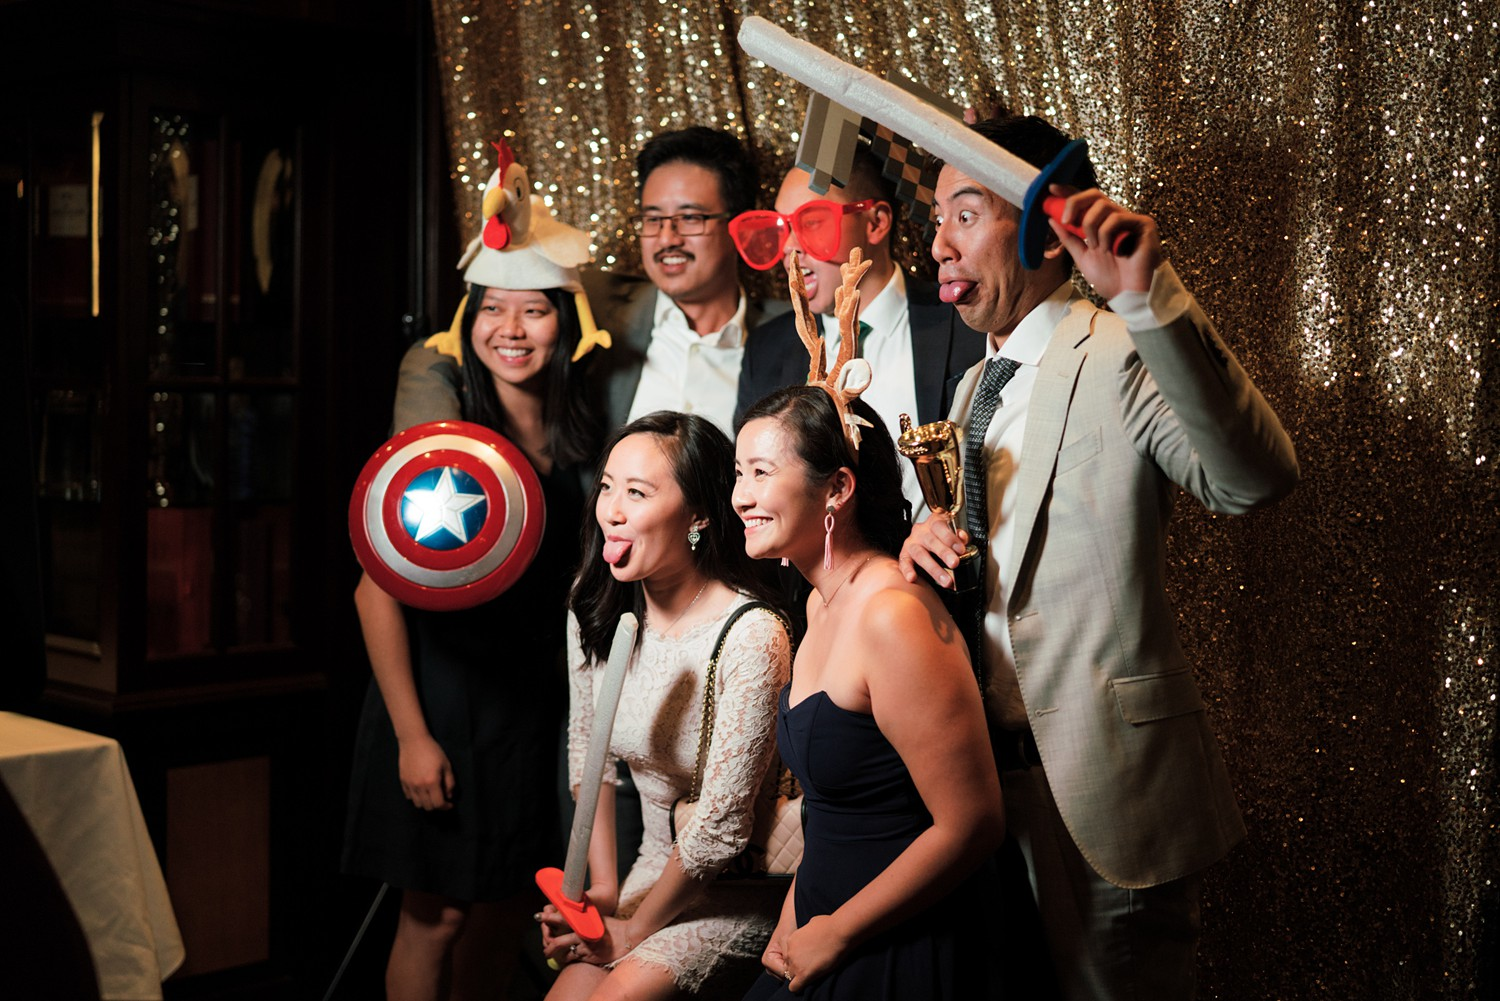 Photo_Booth_Eagles_Nest_Golf_Club_Wedding_Photos_Toronto_Wedding_Photographer-Rhythm_Photography